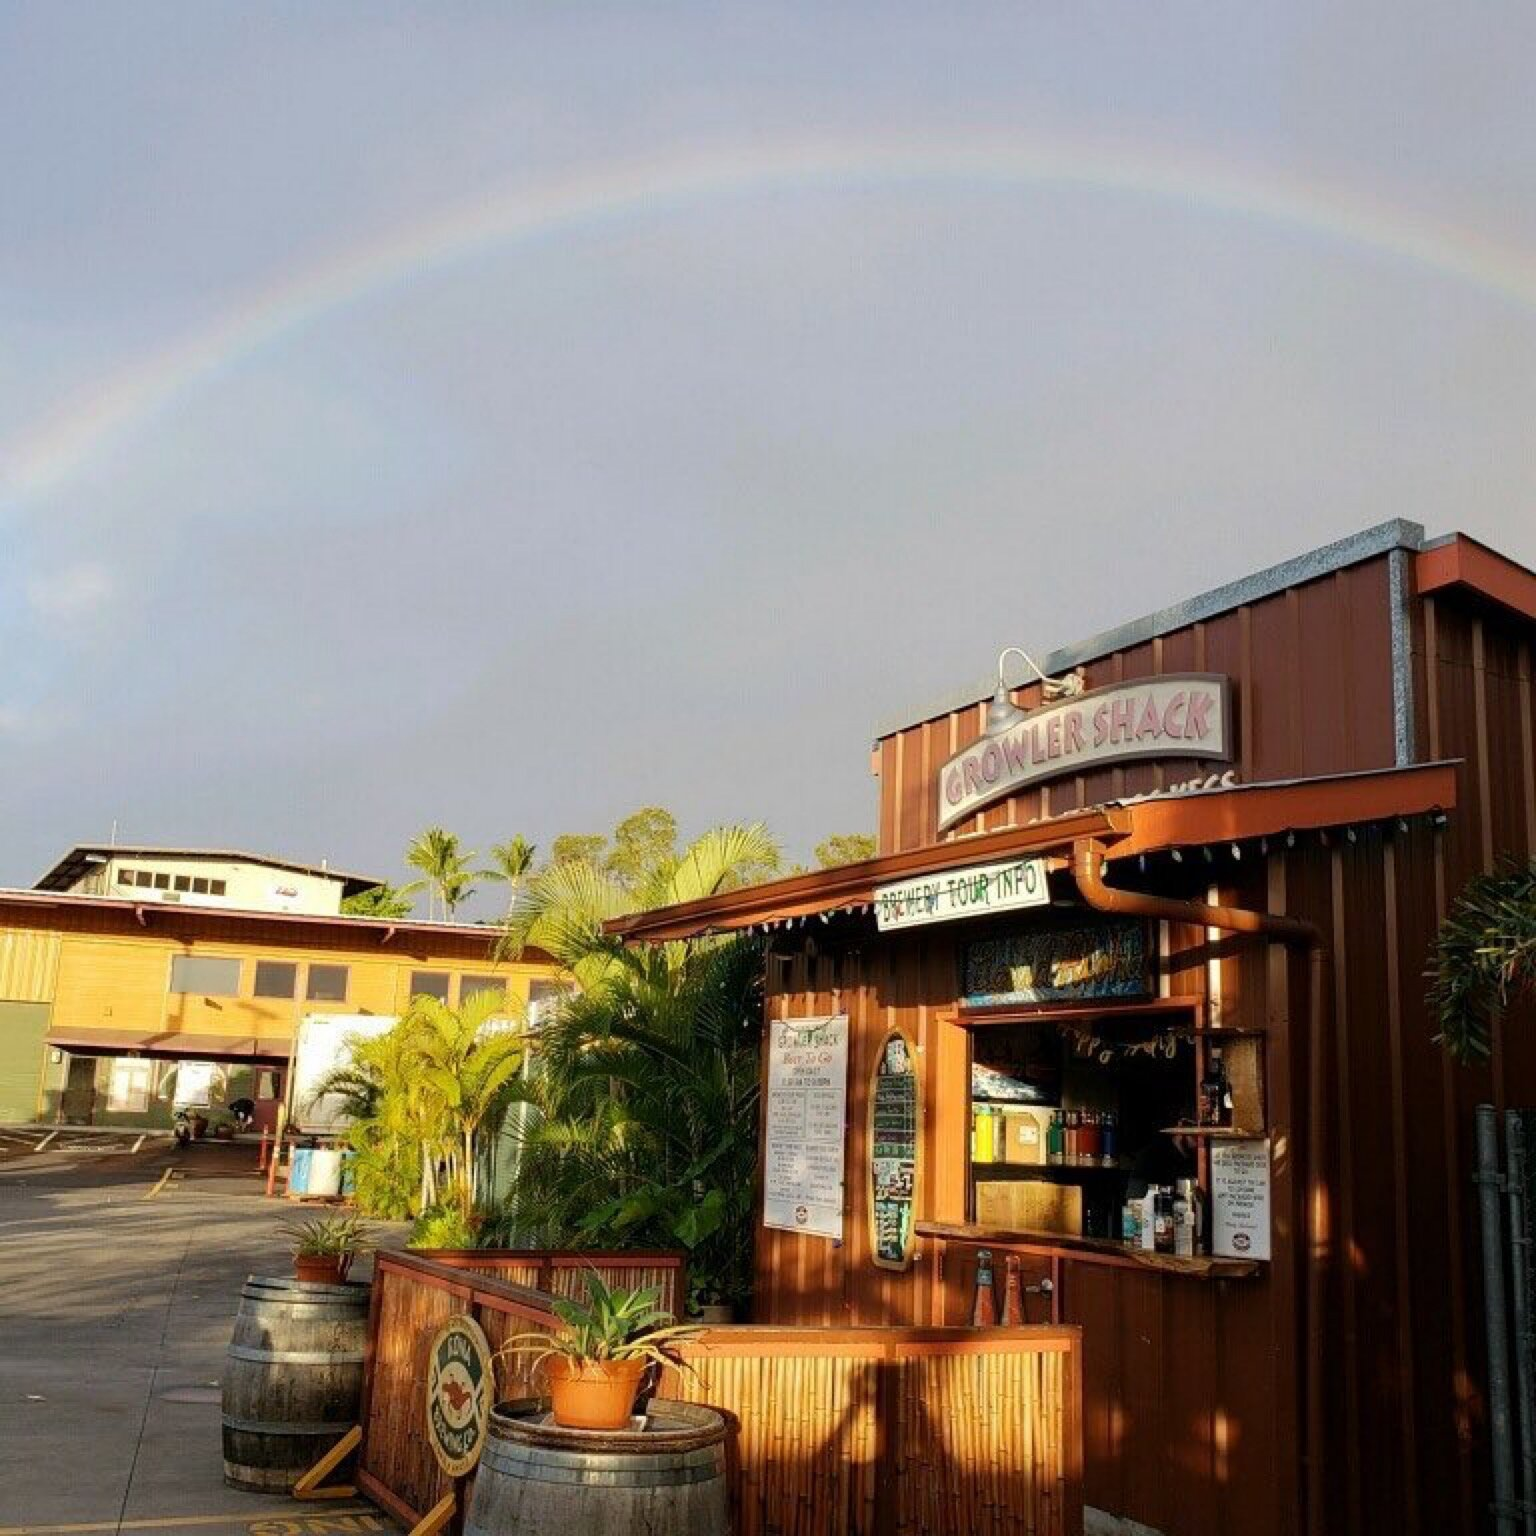 Kona Brew's Growler Shack. Courtesy photo.